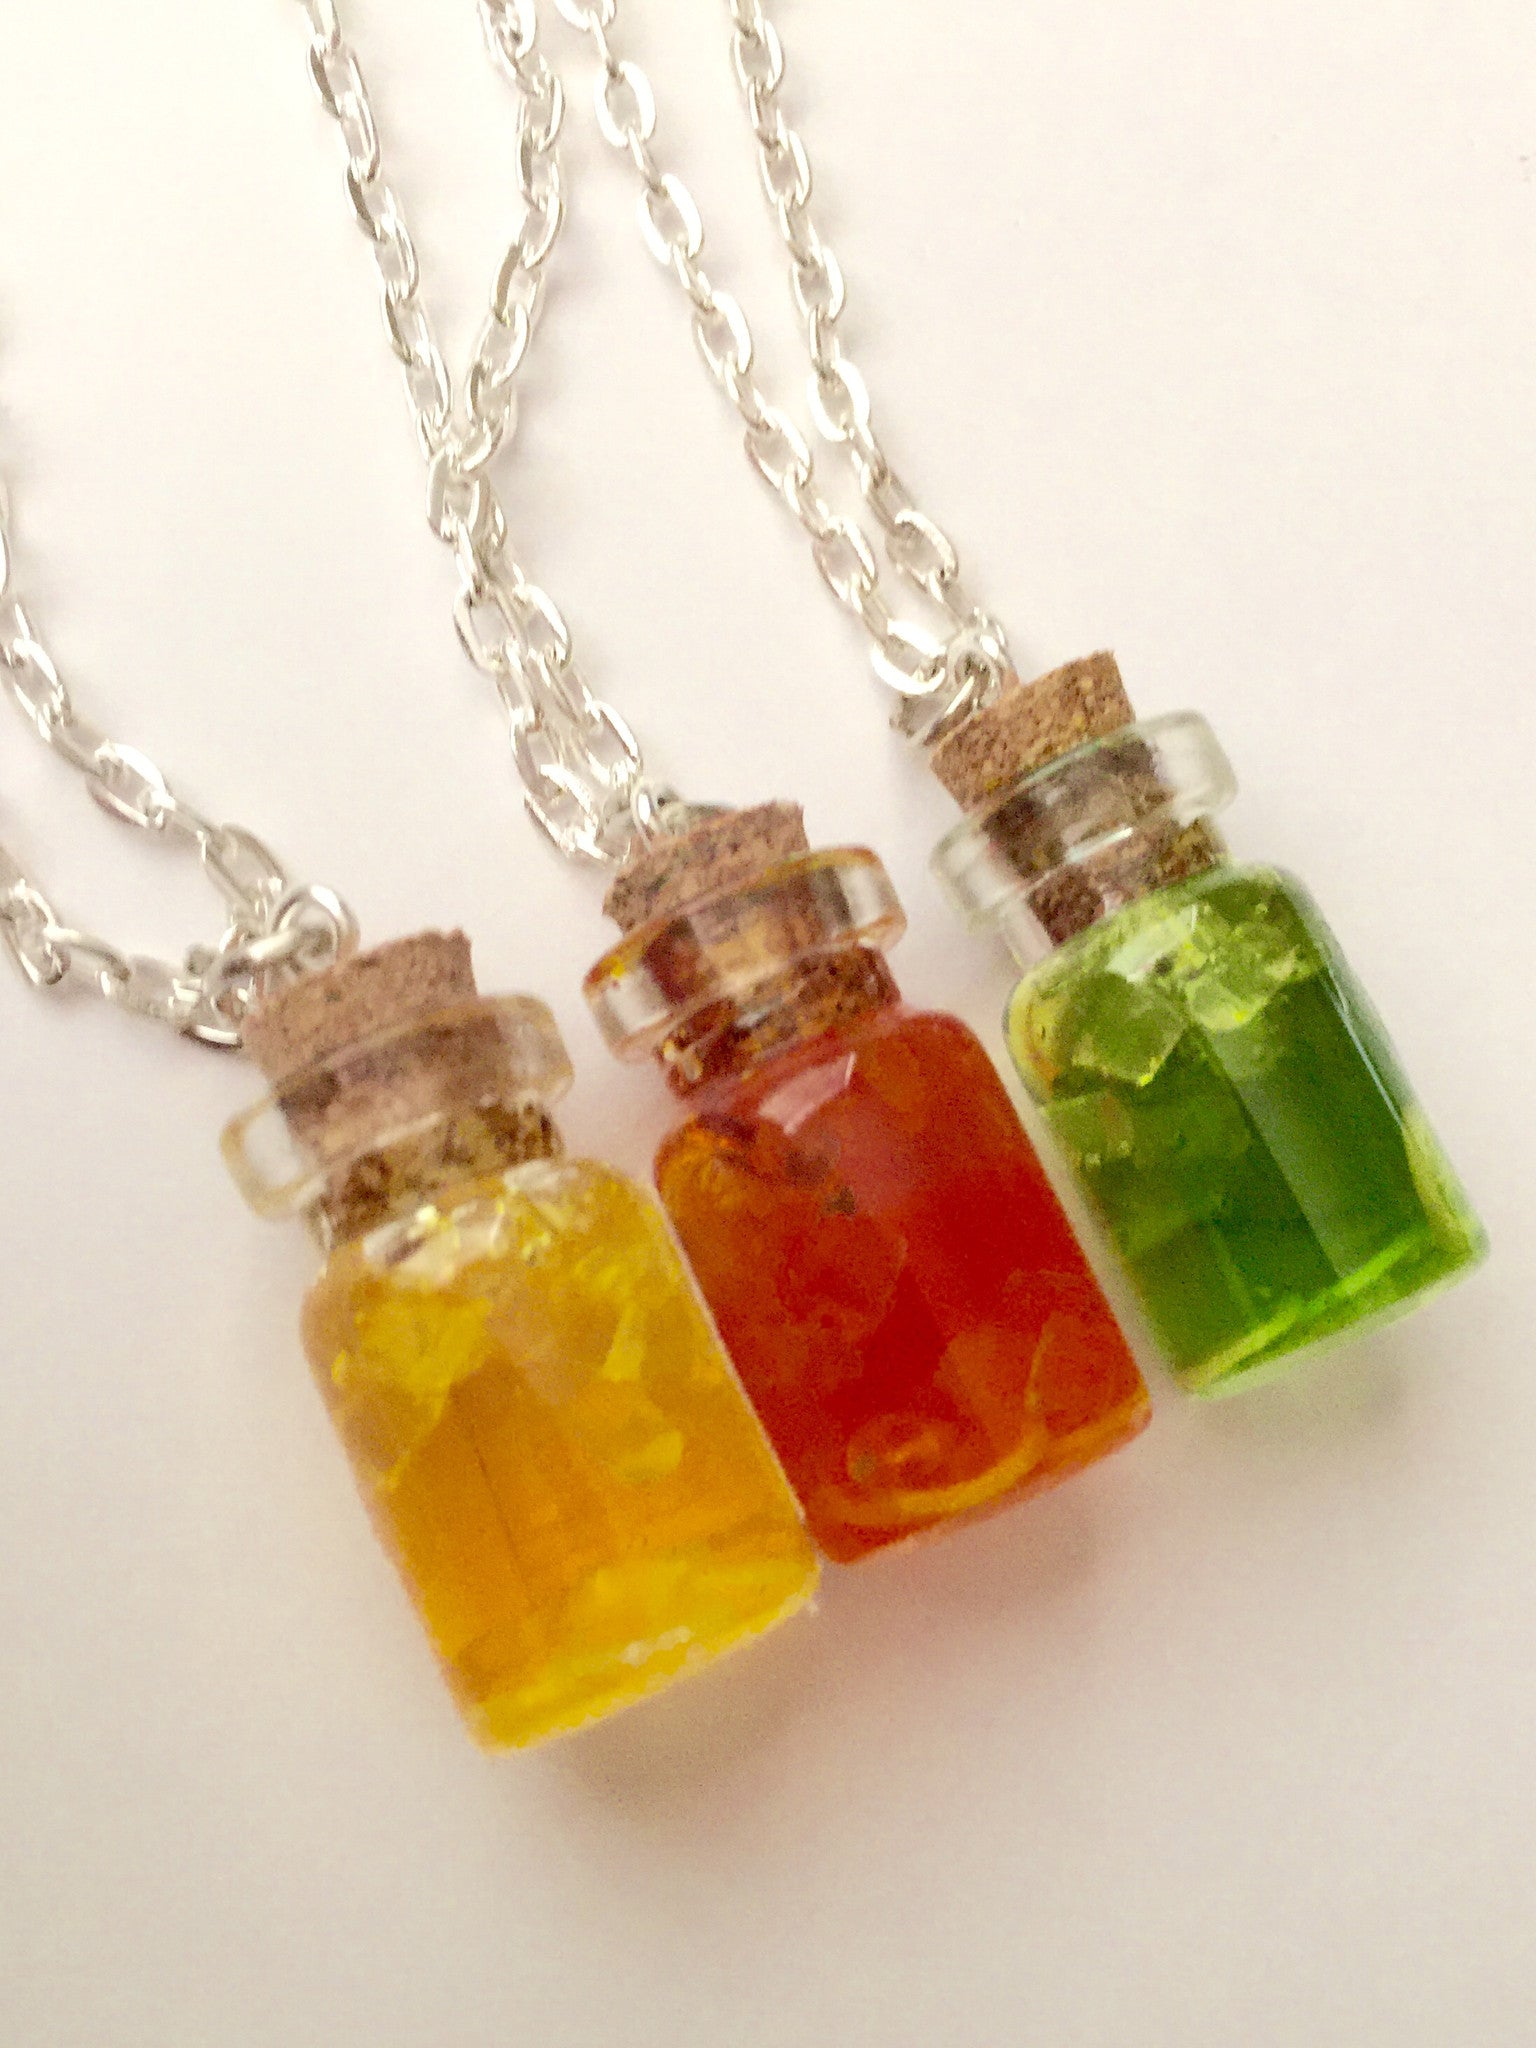 fruit juice necklace - Jillicious charms and accessories - 4